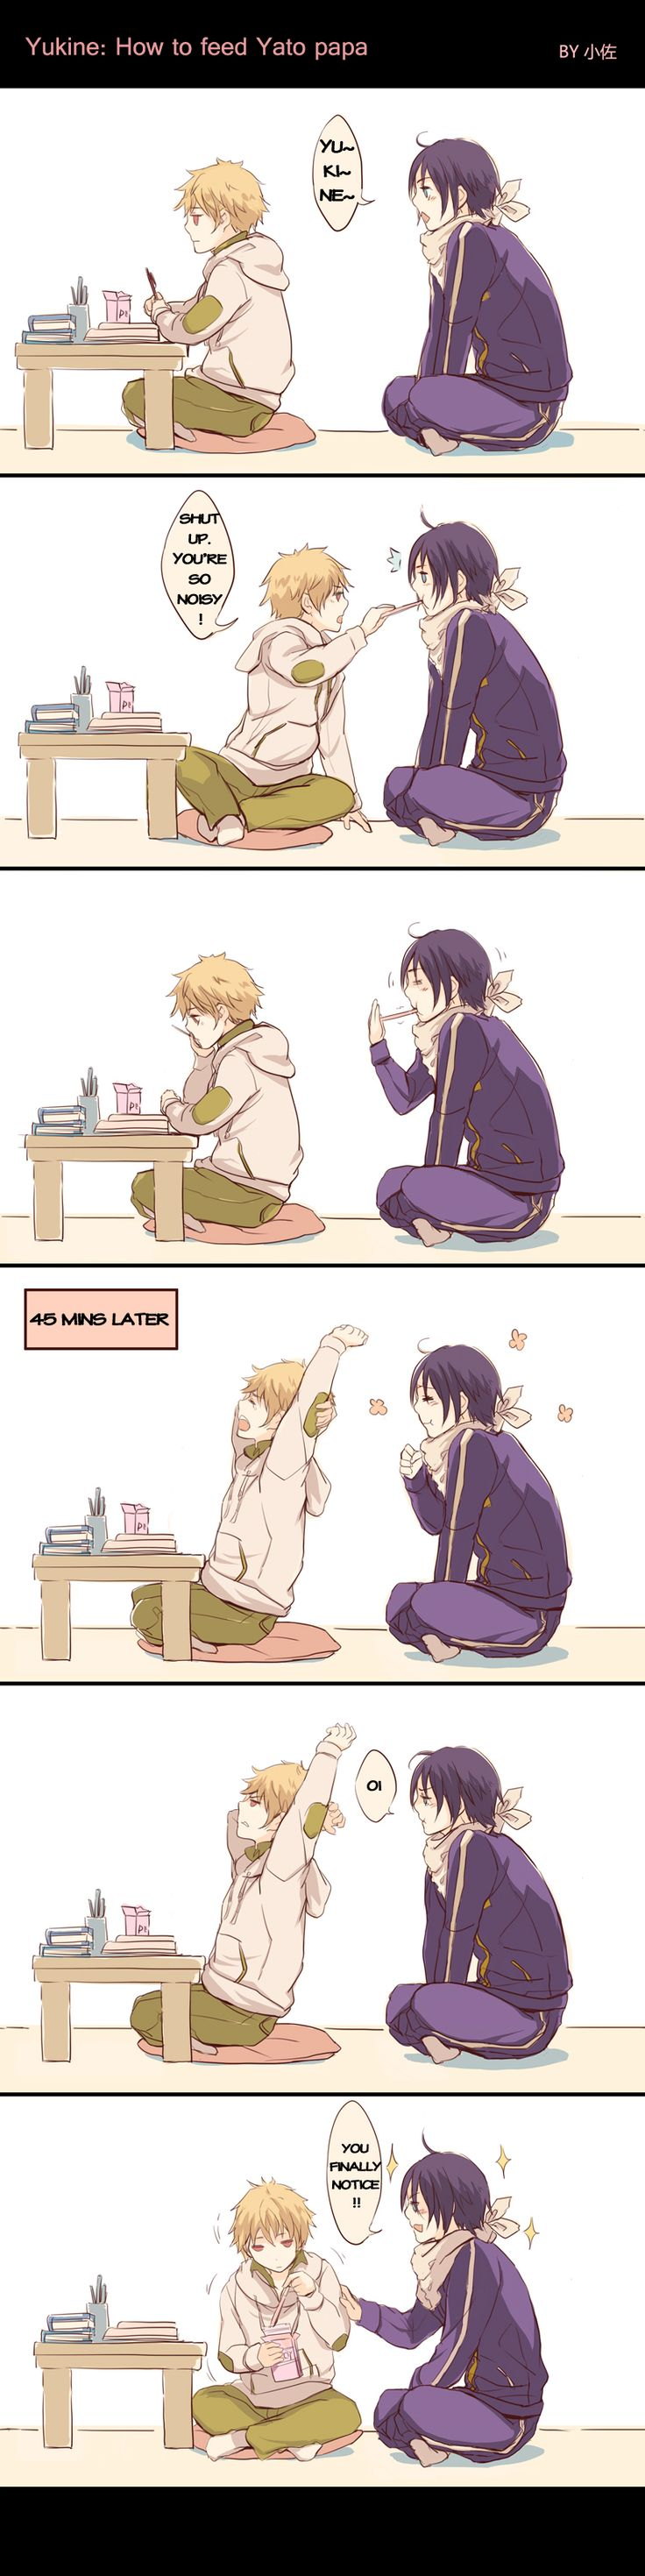 Yukine and Yato + pocky   #Noragami